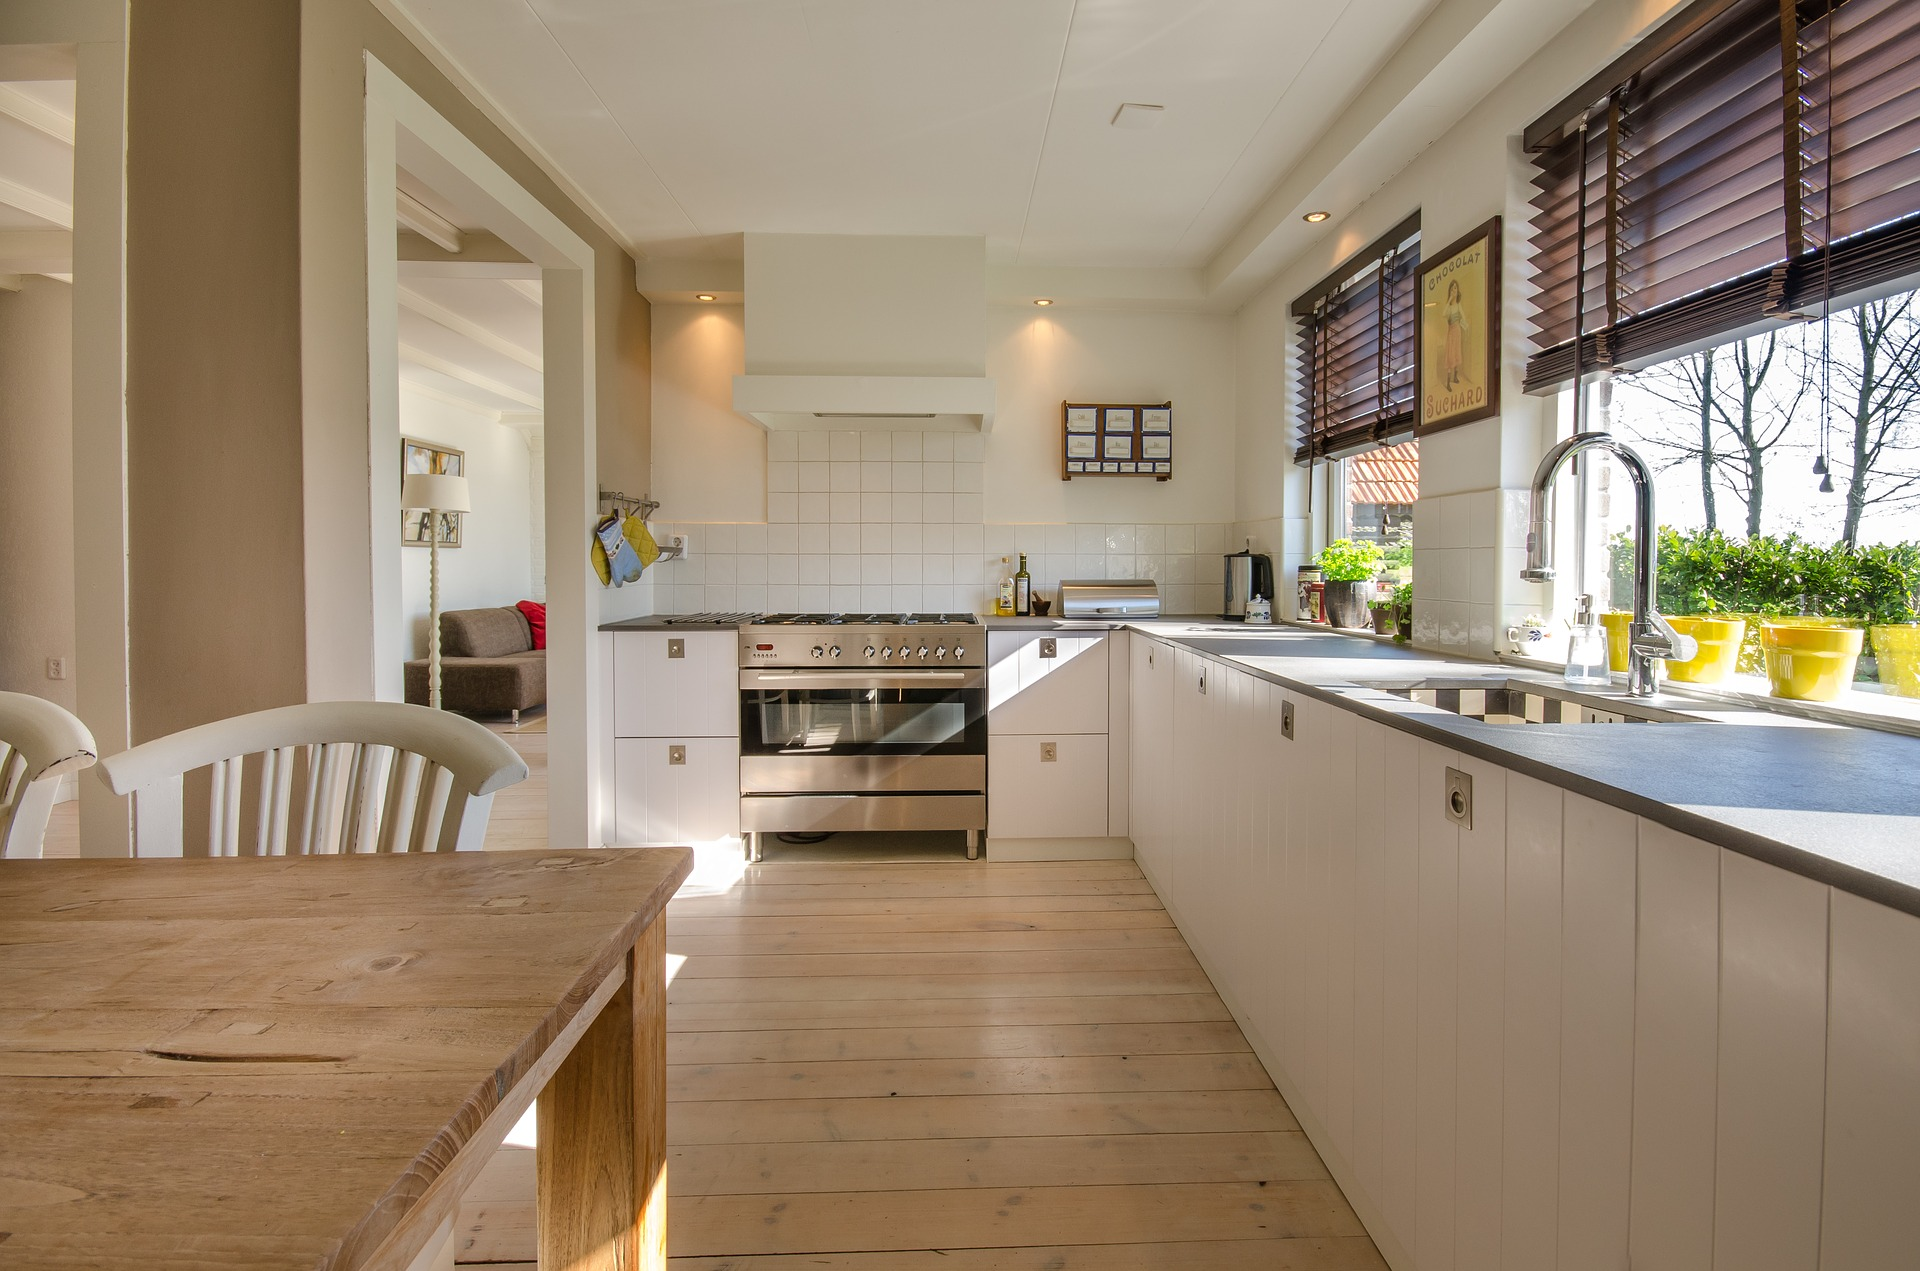 Make The Most Of Your Seacoast of NH Kitchen Space! 7 Time-tested Organizing Tips